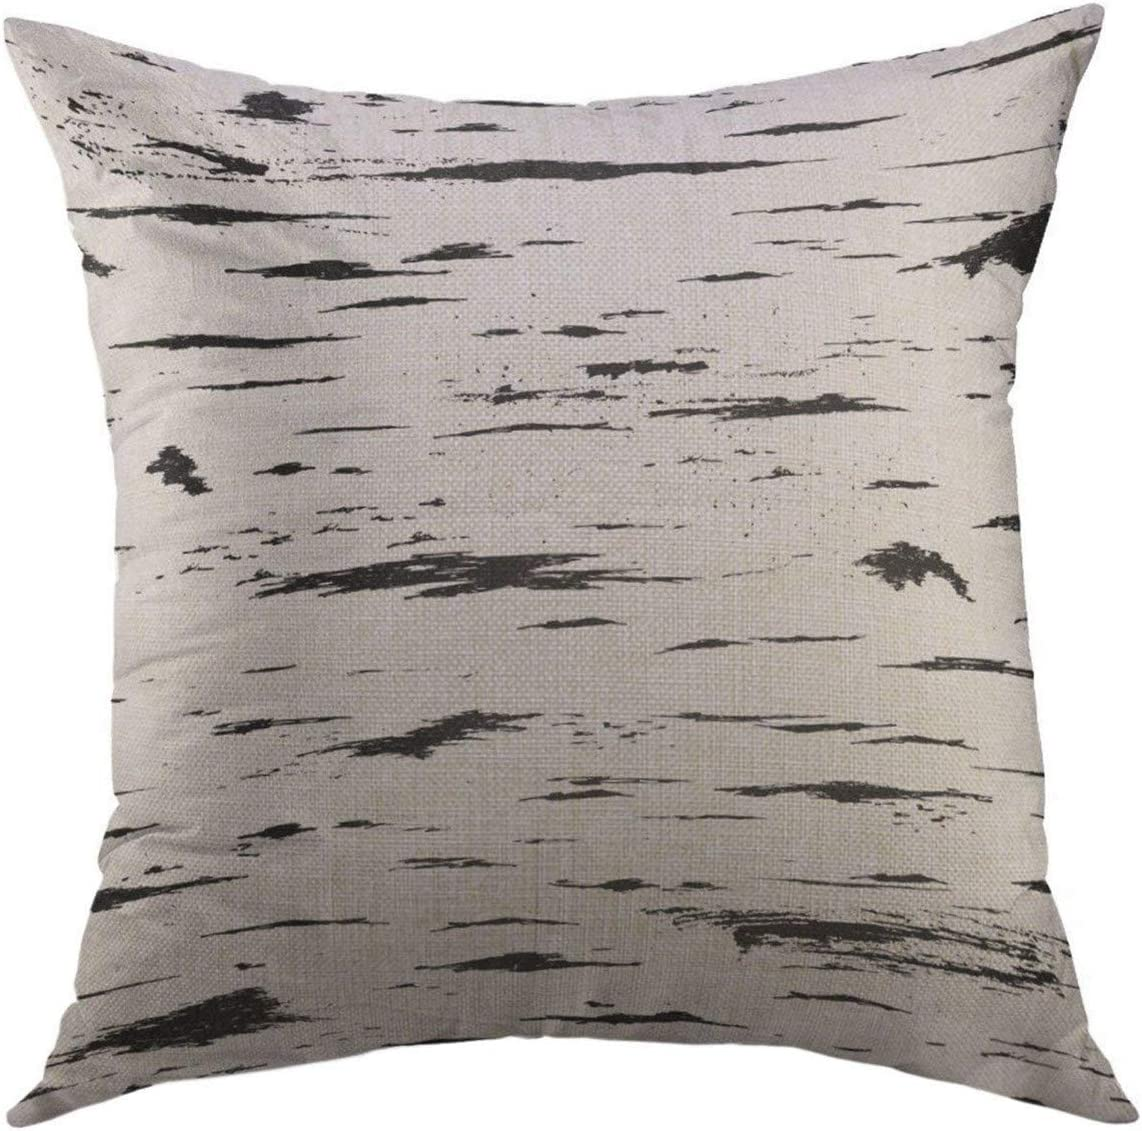 Amazon Com Mugod Decorative Throw Pillow Cover For Couch Sofa White Tree Pattern Birch Black Stripes Of Bark Scratch Paint Home Decor Pillow Case 18x18 Inch Home Kitchen